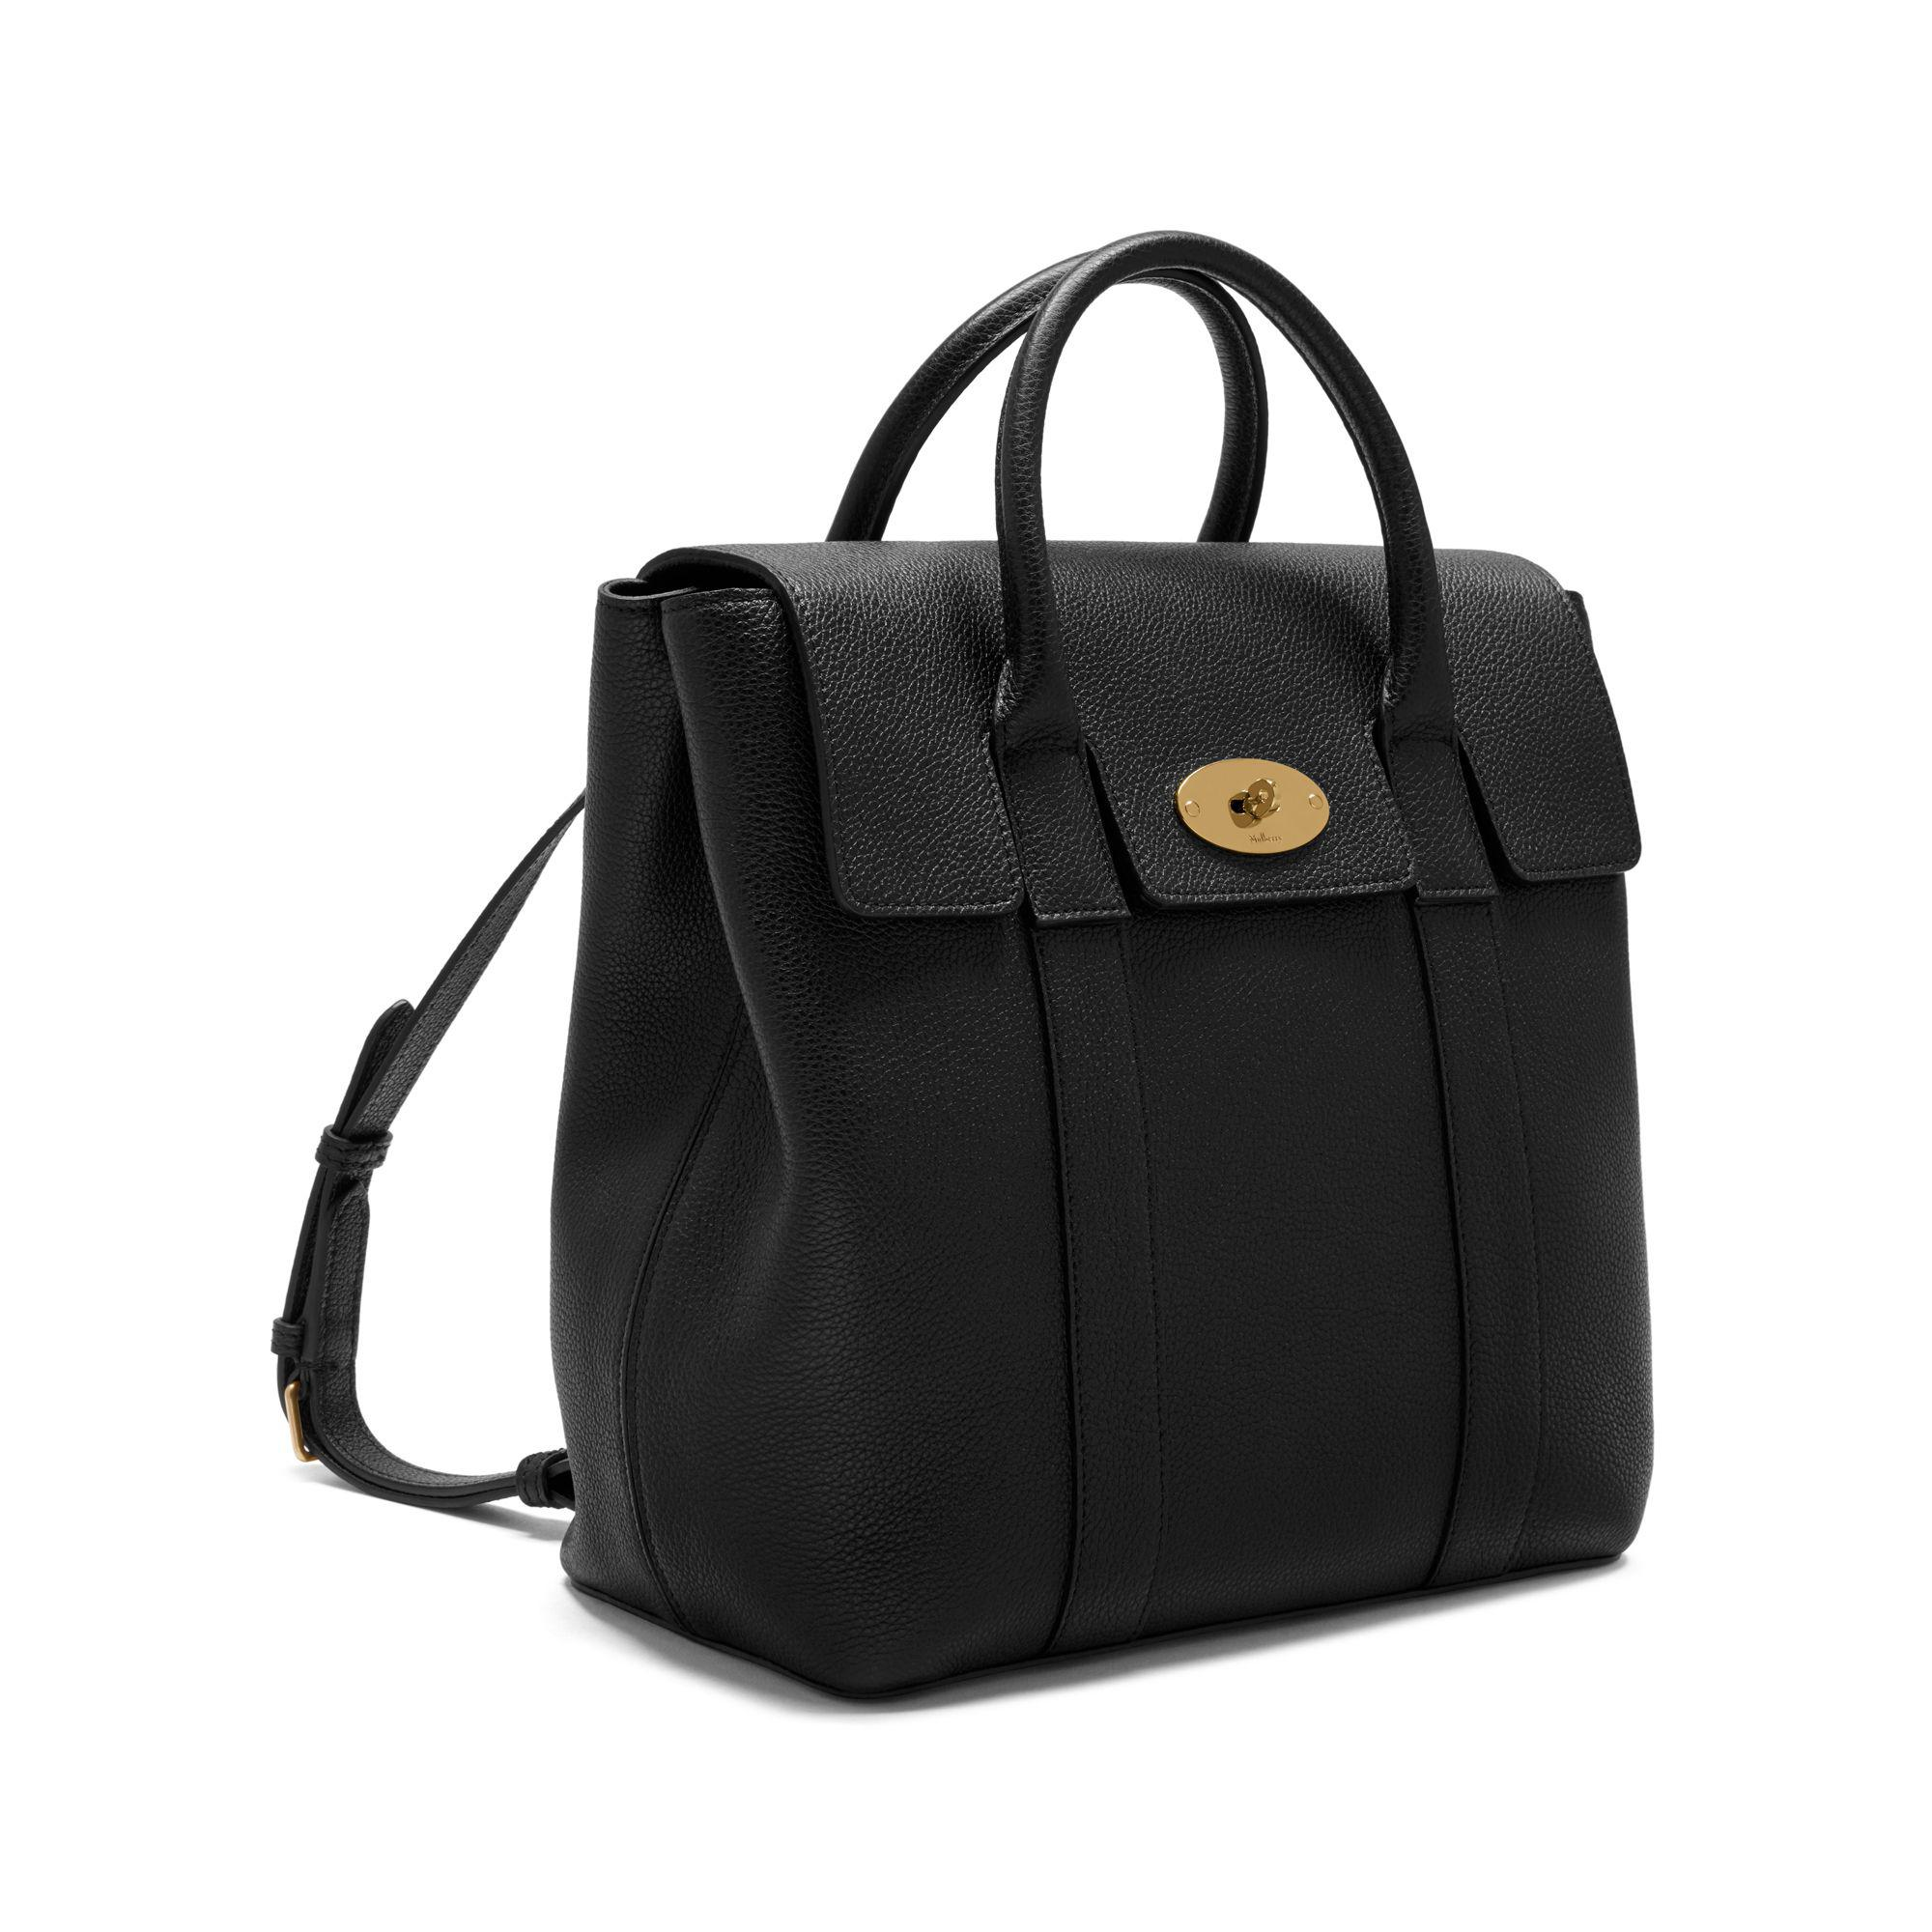 reduced mulberry bayswater grained leather tote c85f3 cf7b2  ireland  mulberry bayswater backpack in black lyst e34de 70474 edb6426100259